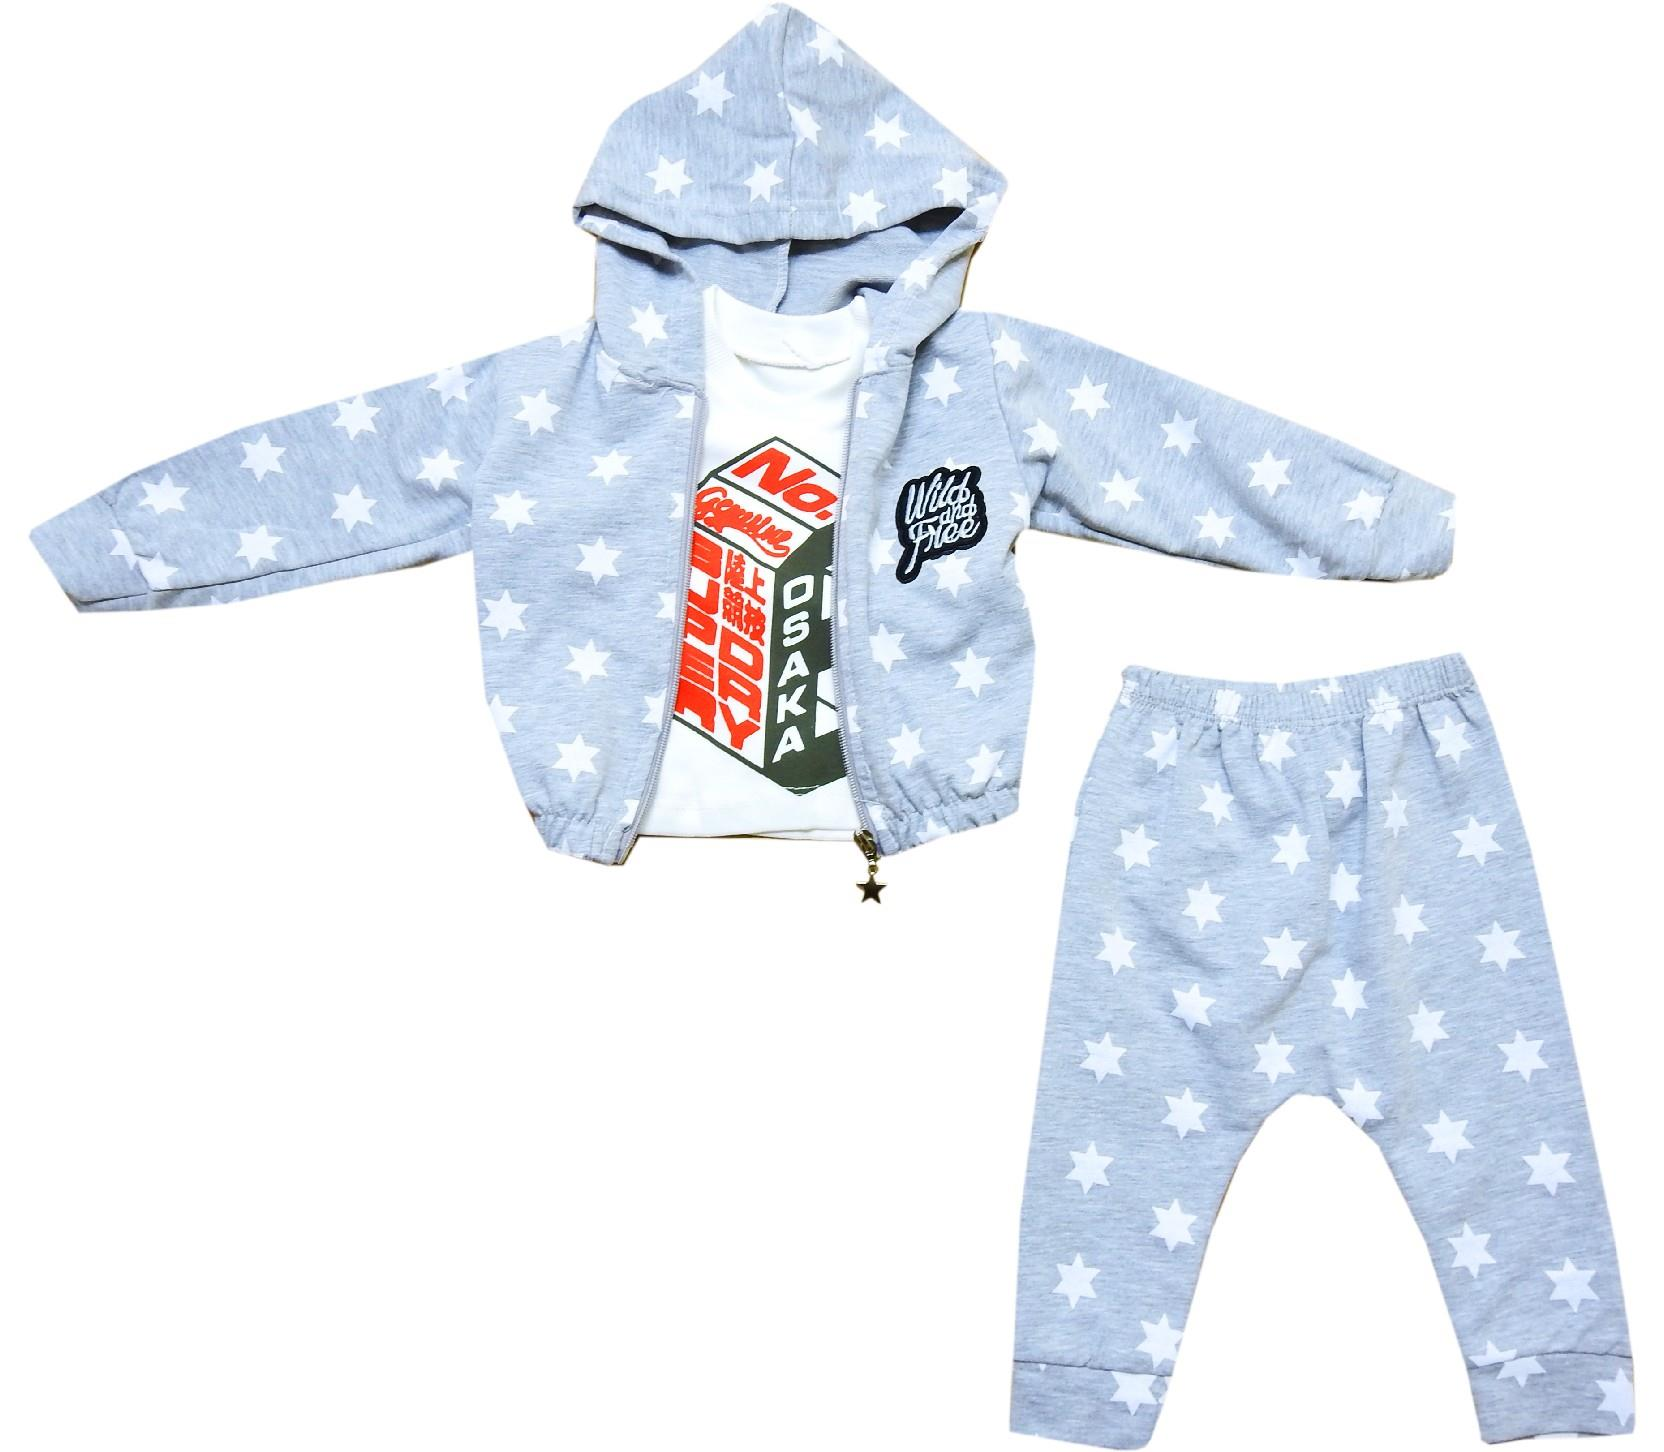 Wholesale star embroidery t-shirt, hooded sweatshirt and trouser triple set for boy (6-12-18 month)